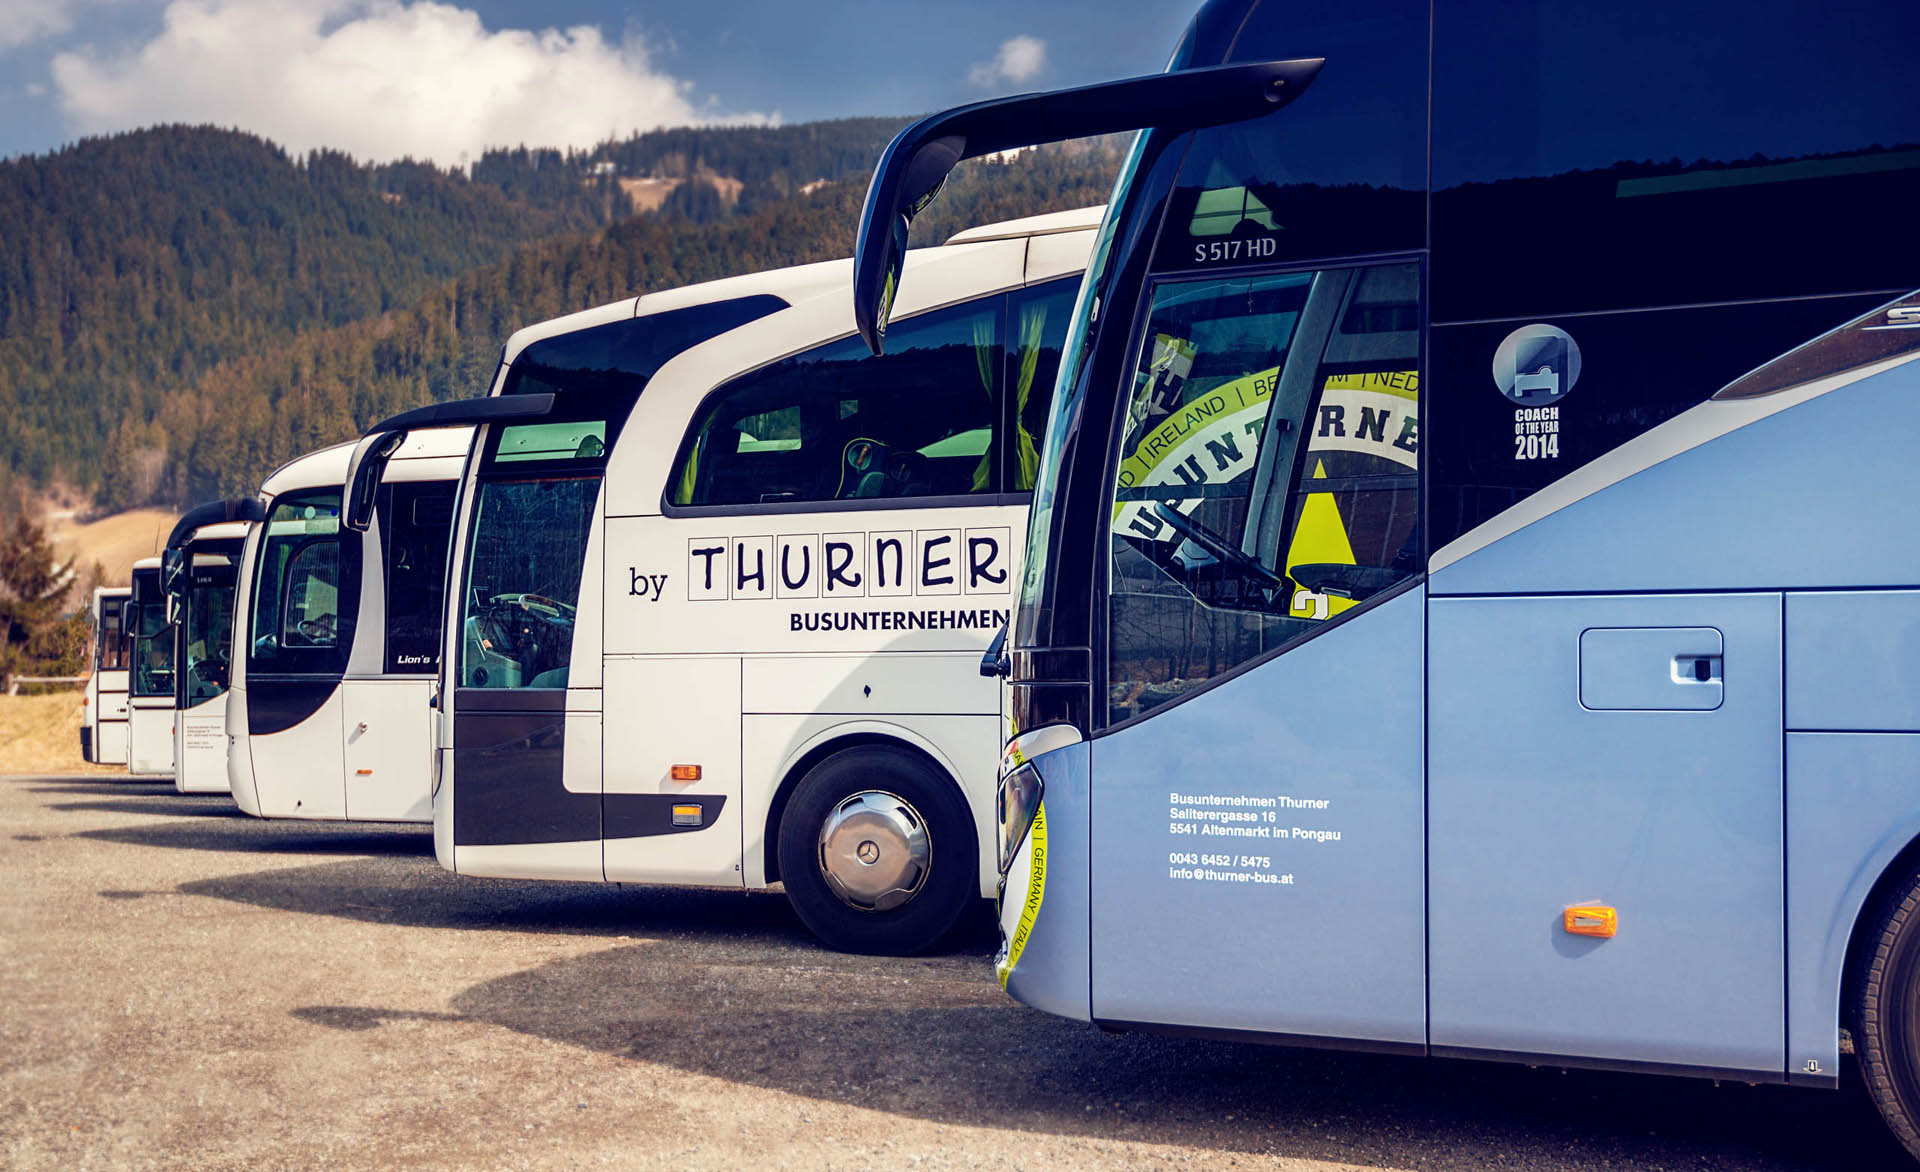 thurner-bus-flotte-4_2